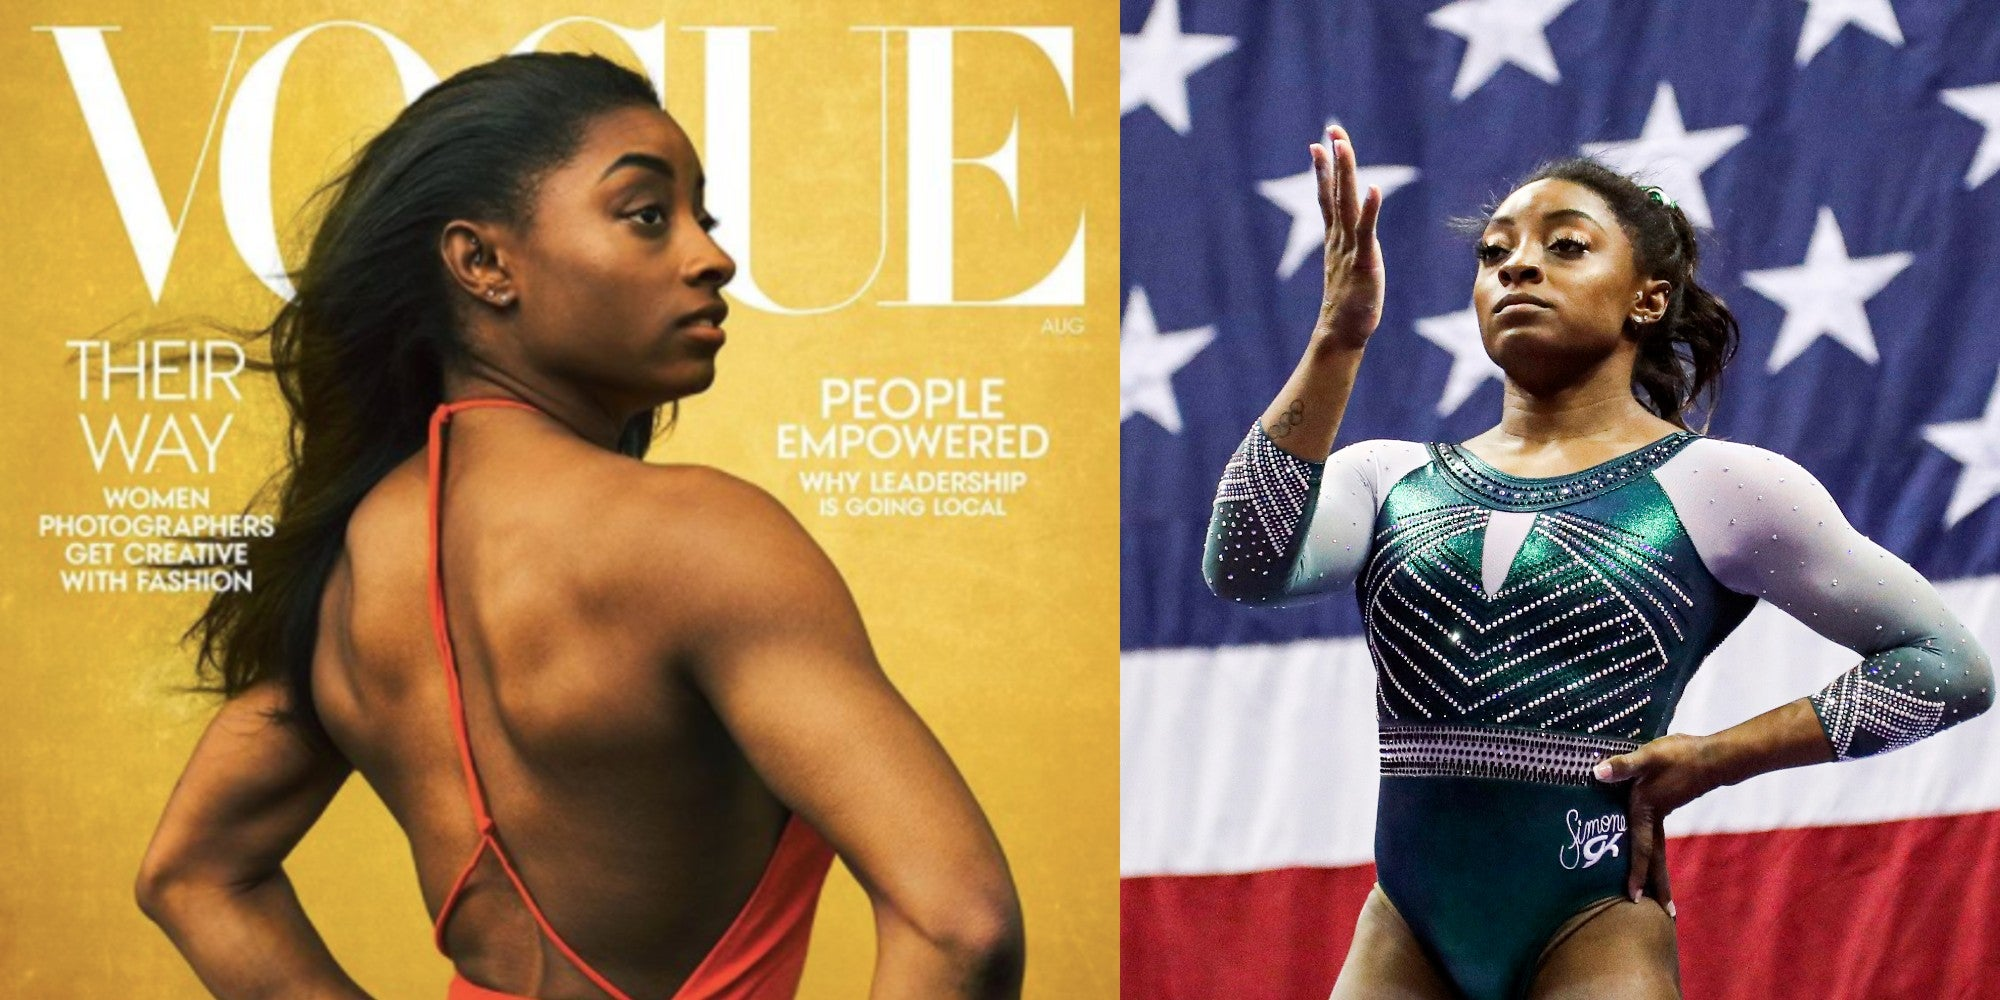 'Badly lit' photos of Simone Biles has lead to calls for more Black photographers to be hired